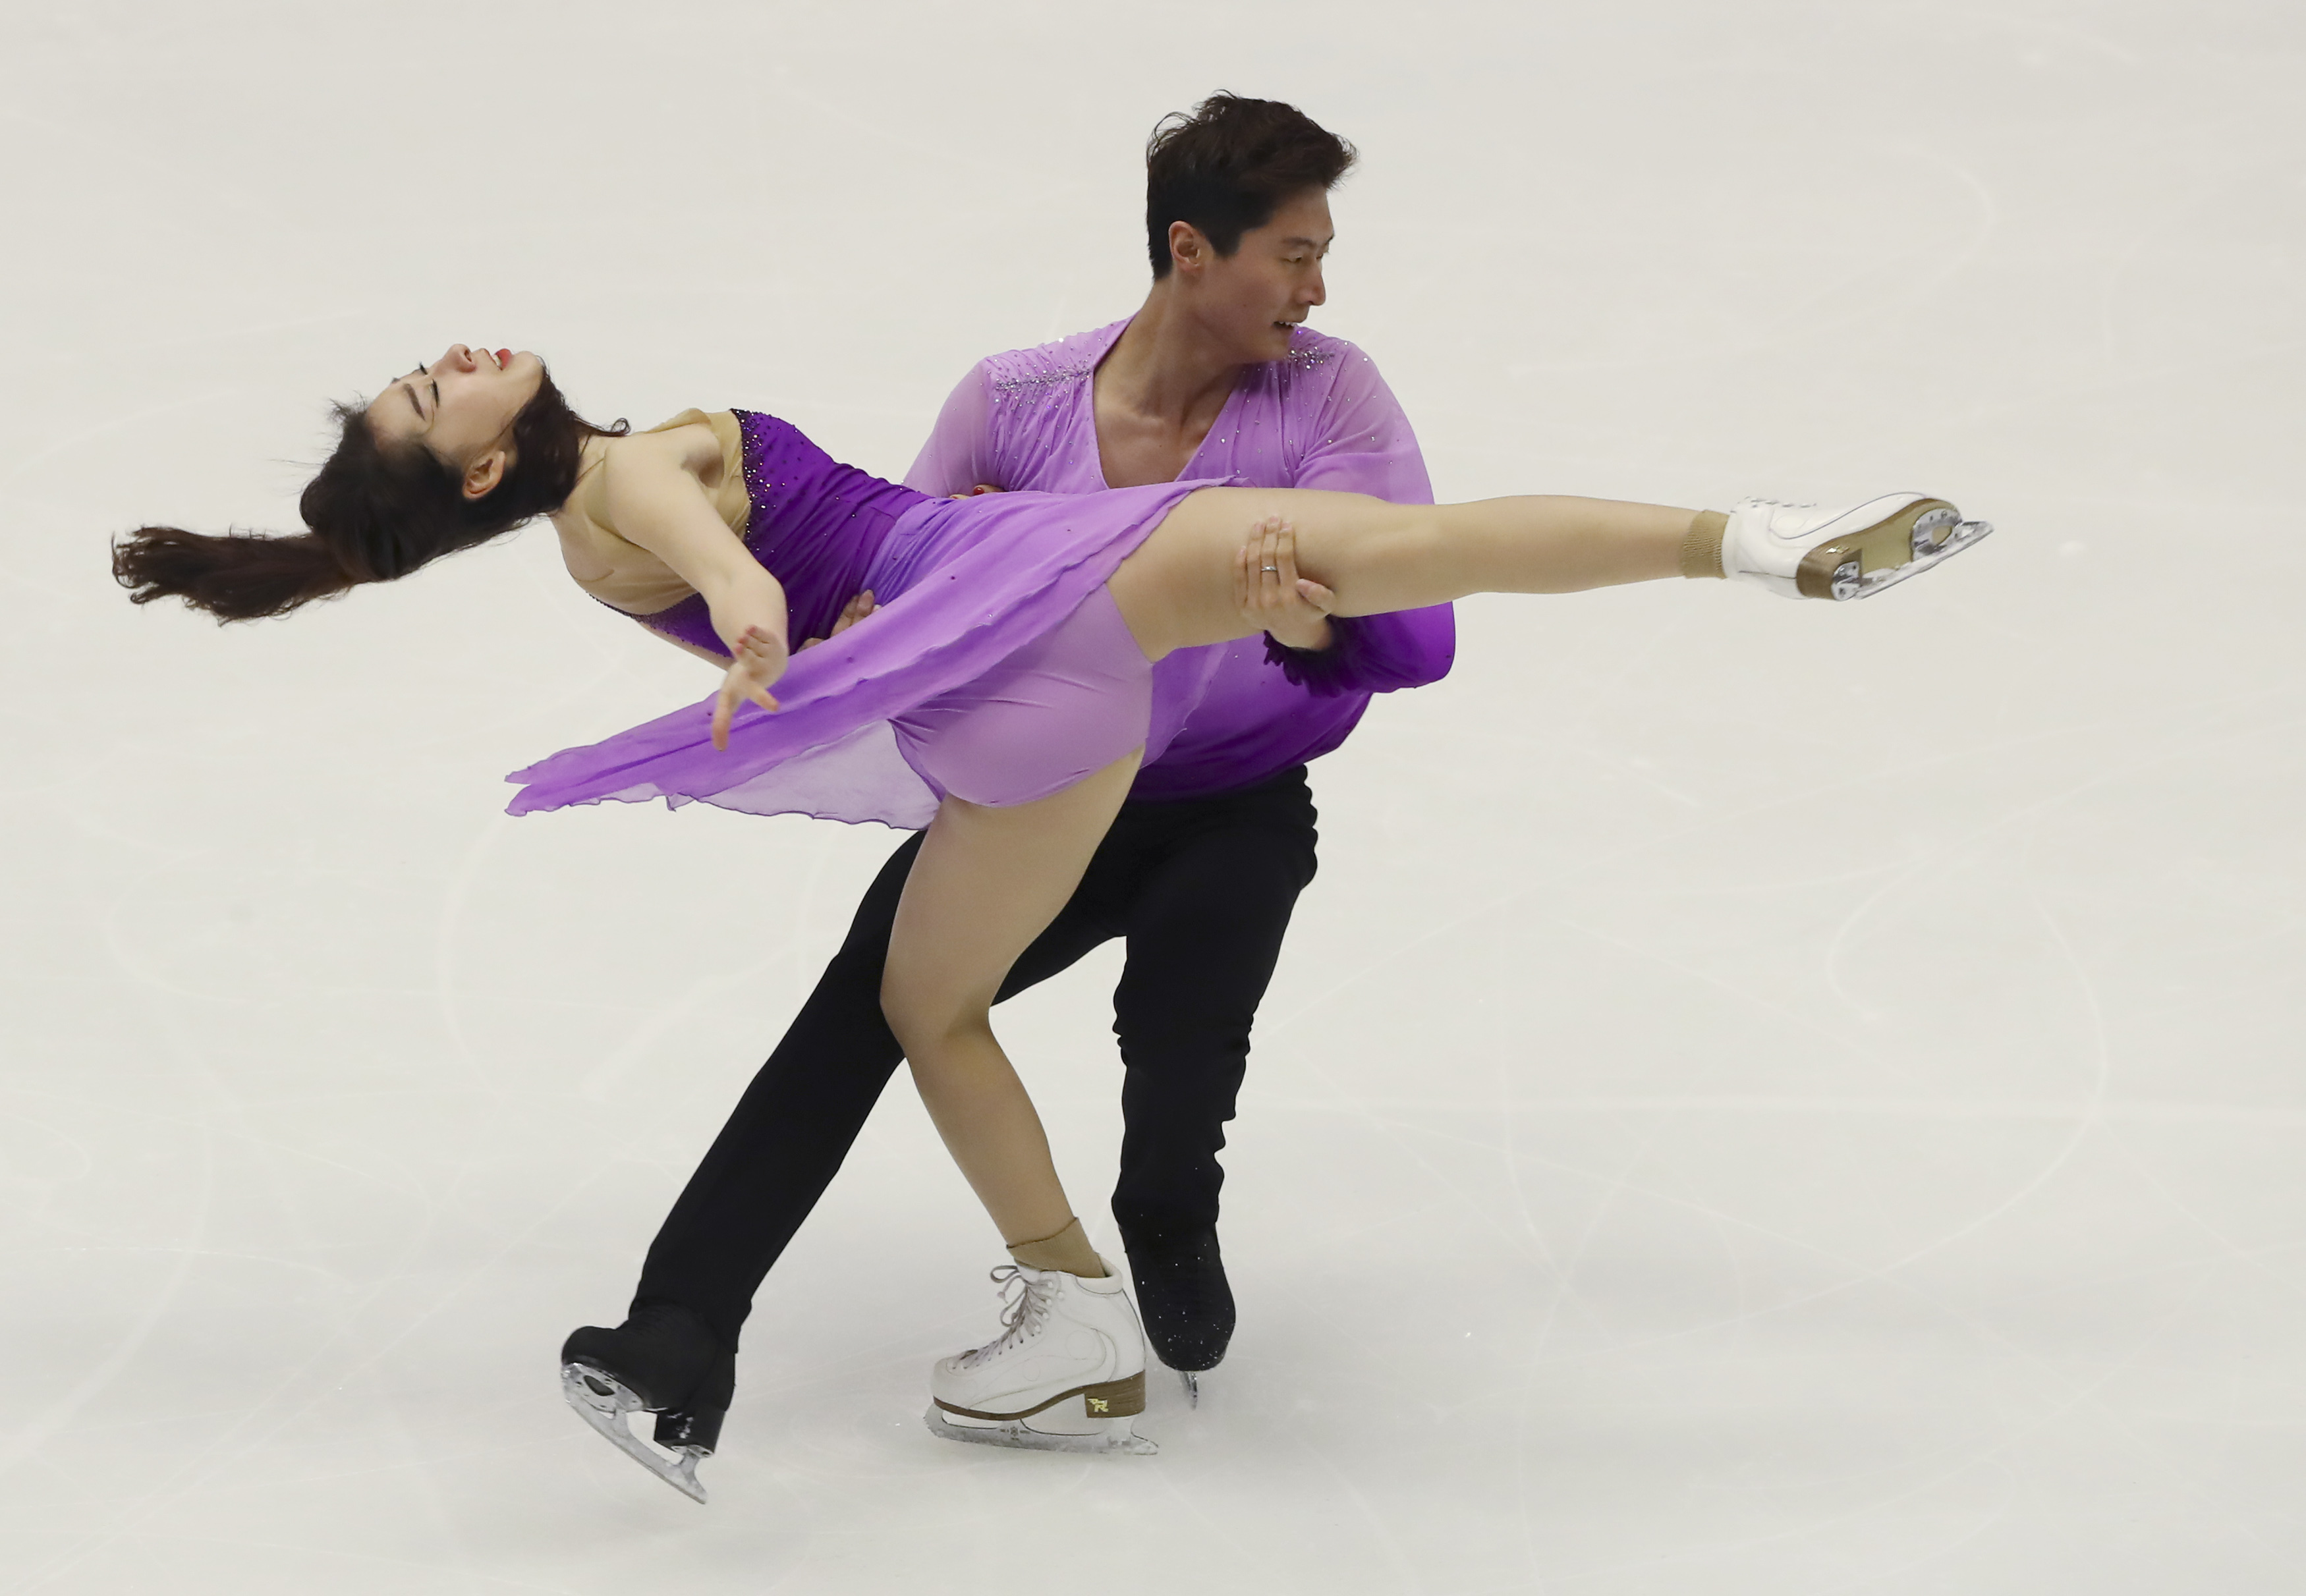 Chen Hong and Zhao Yan of China perform in the Ice Dance Free Dance program of Figure Skating competition at Makomanai Indoor Skating Rink at the Asian Winter Games in Sapporo, northern Japan, Friday, Feb. 24, 2017. (AP Photo/Eugene Hoshiko)